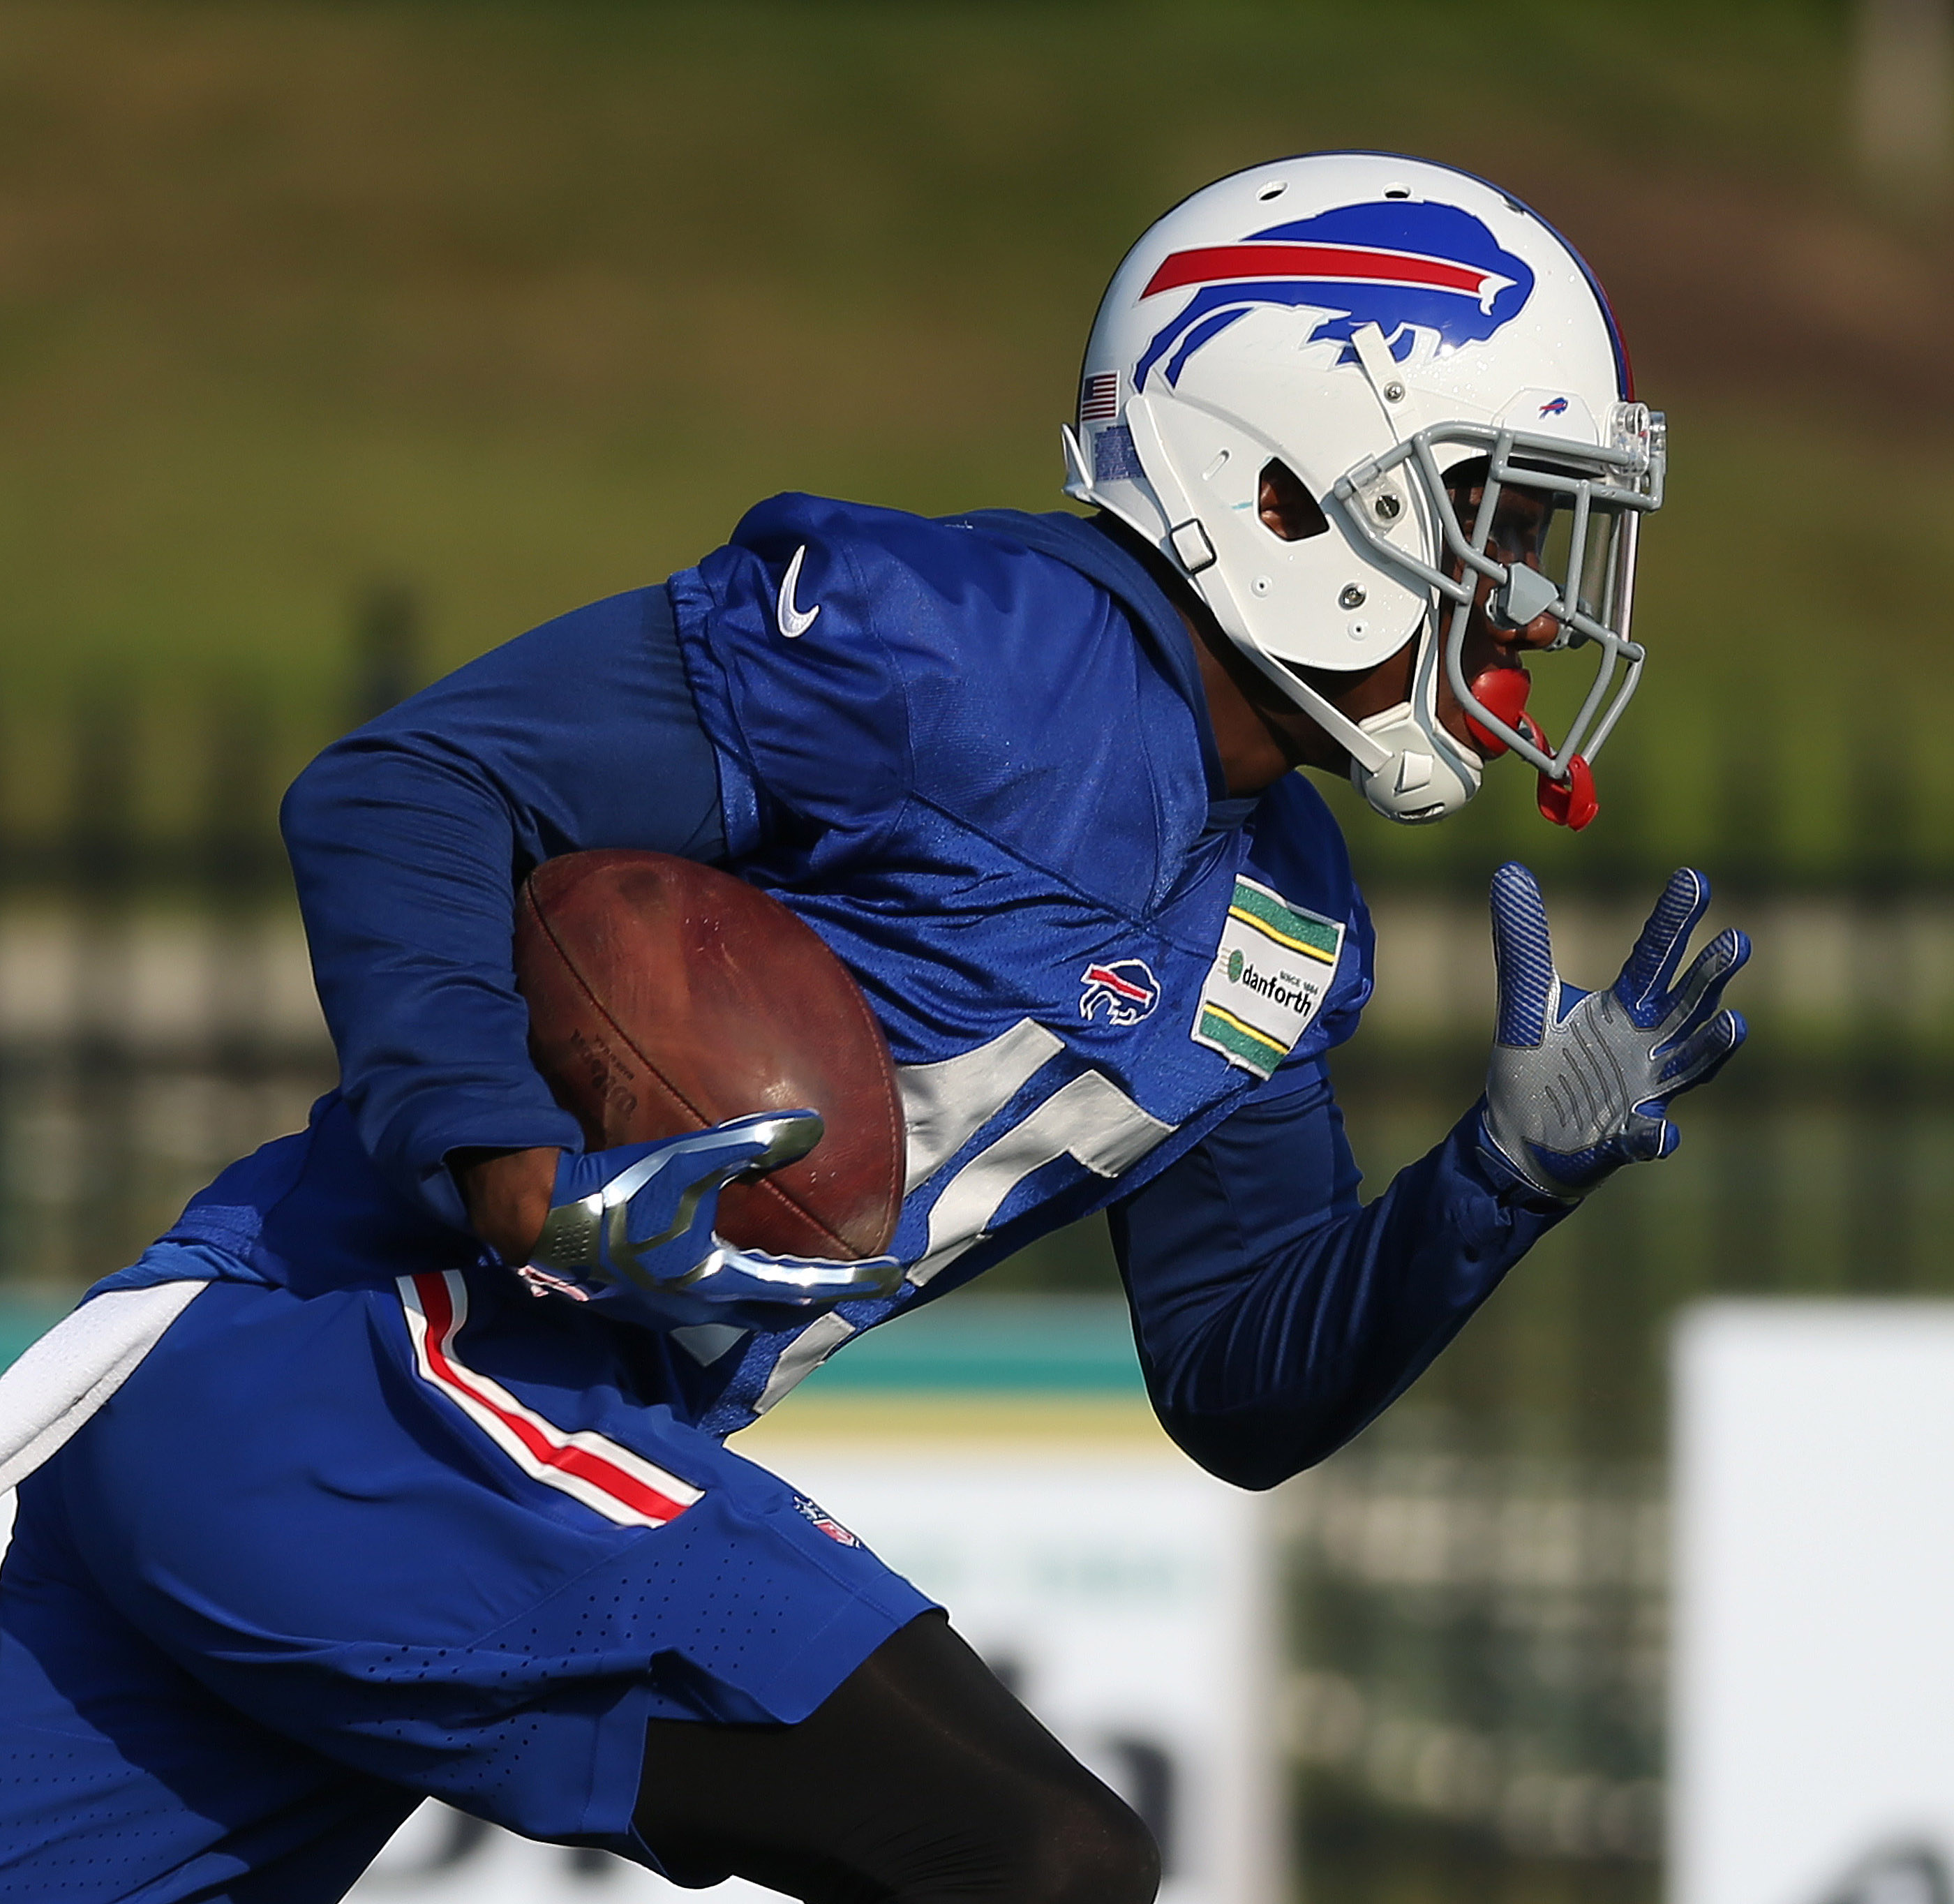 Buffalo Bills cornerback Kevon Seymour was the latest player to be traded in a series of moves made by Bills' management. (James P. McCoy/ Buffalo News)